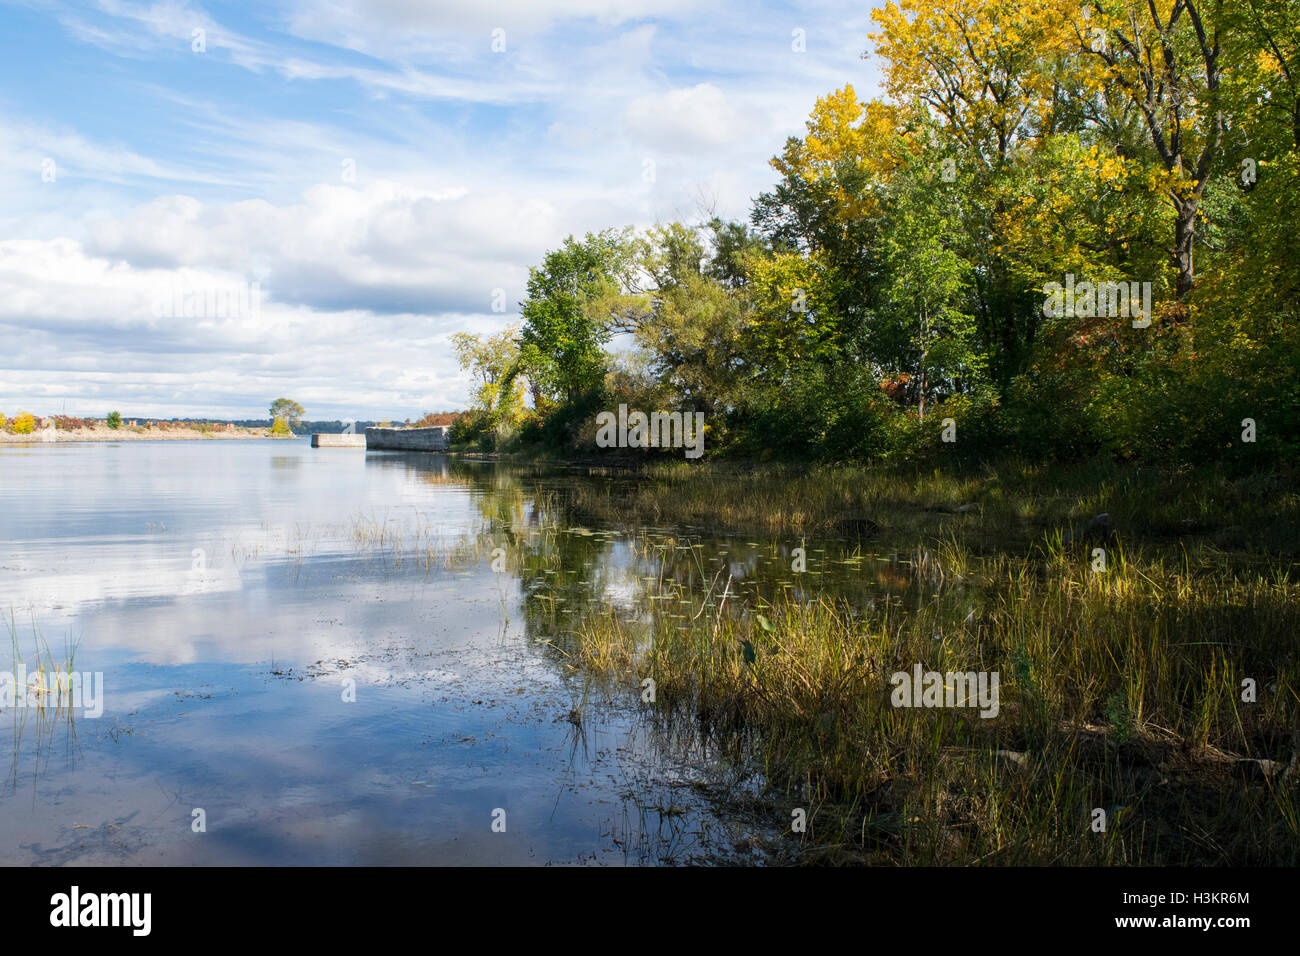 An autumn scene near the entrance to the Soulange Canal - Stock Image